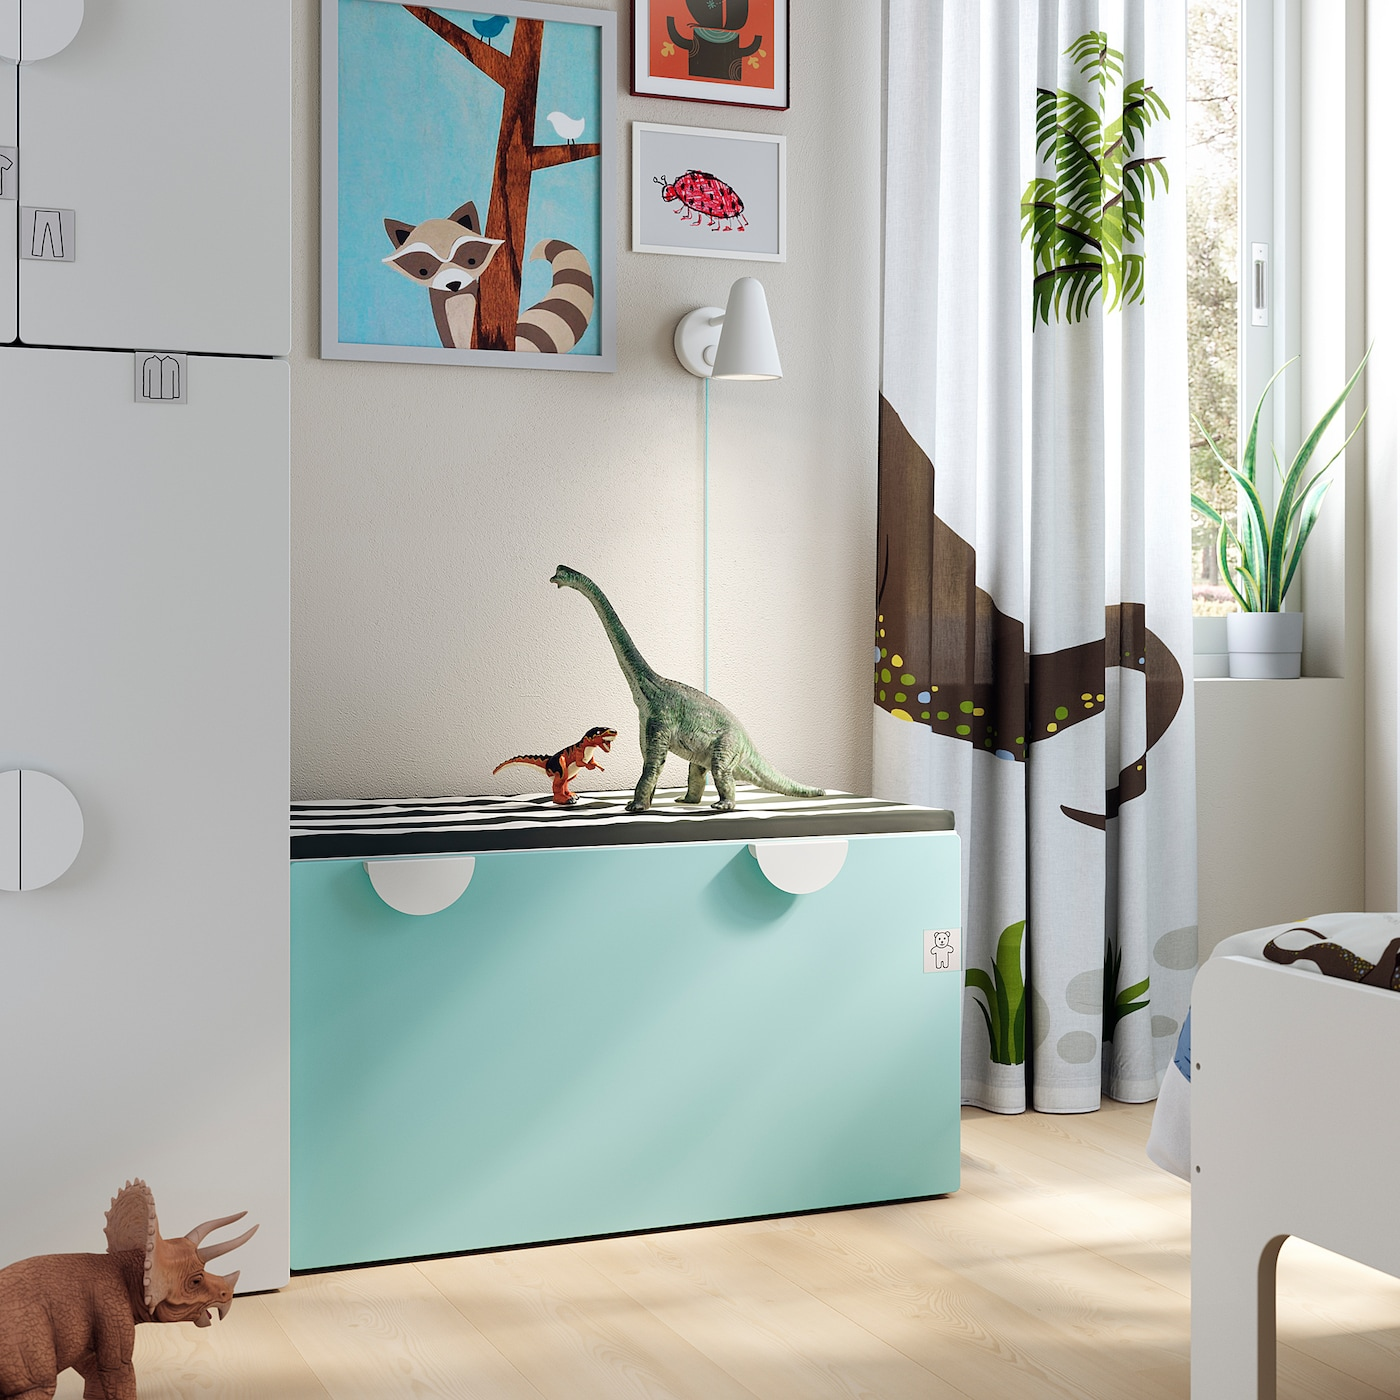 SMÅSTAD Bench with toy storage, white/pale turquoise, 90x52x48 cm